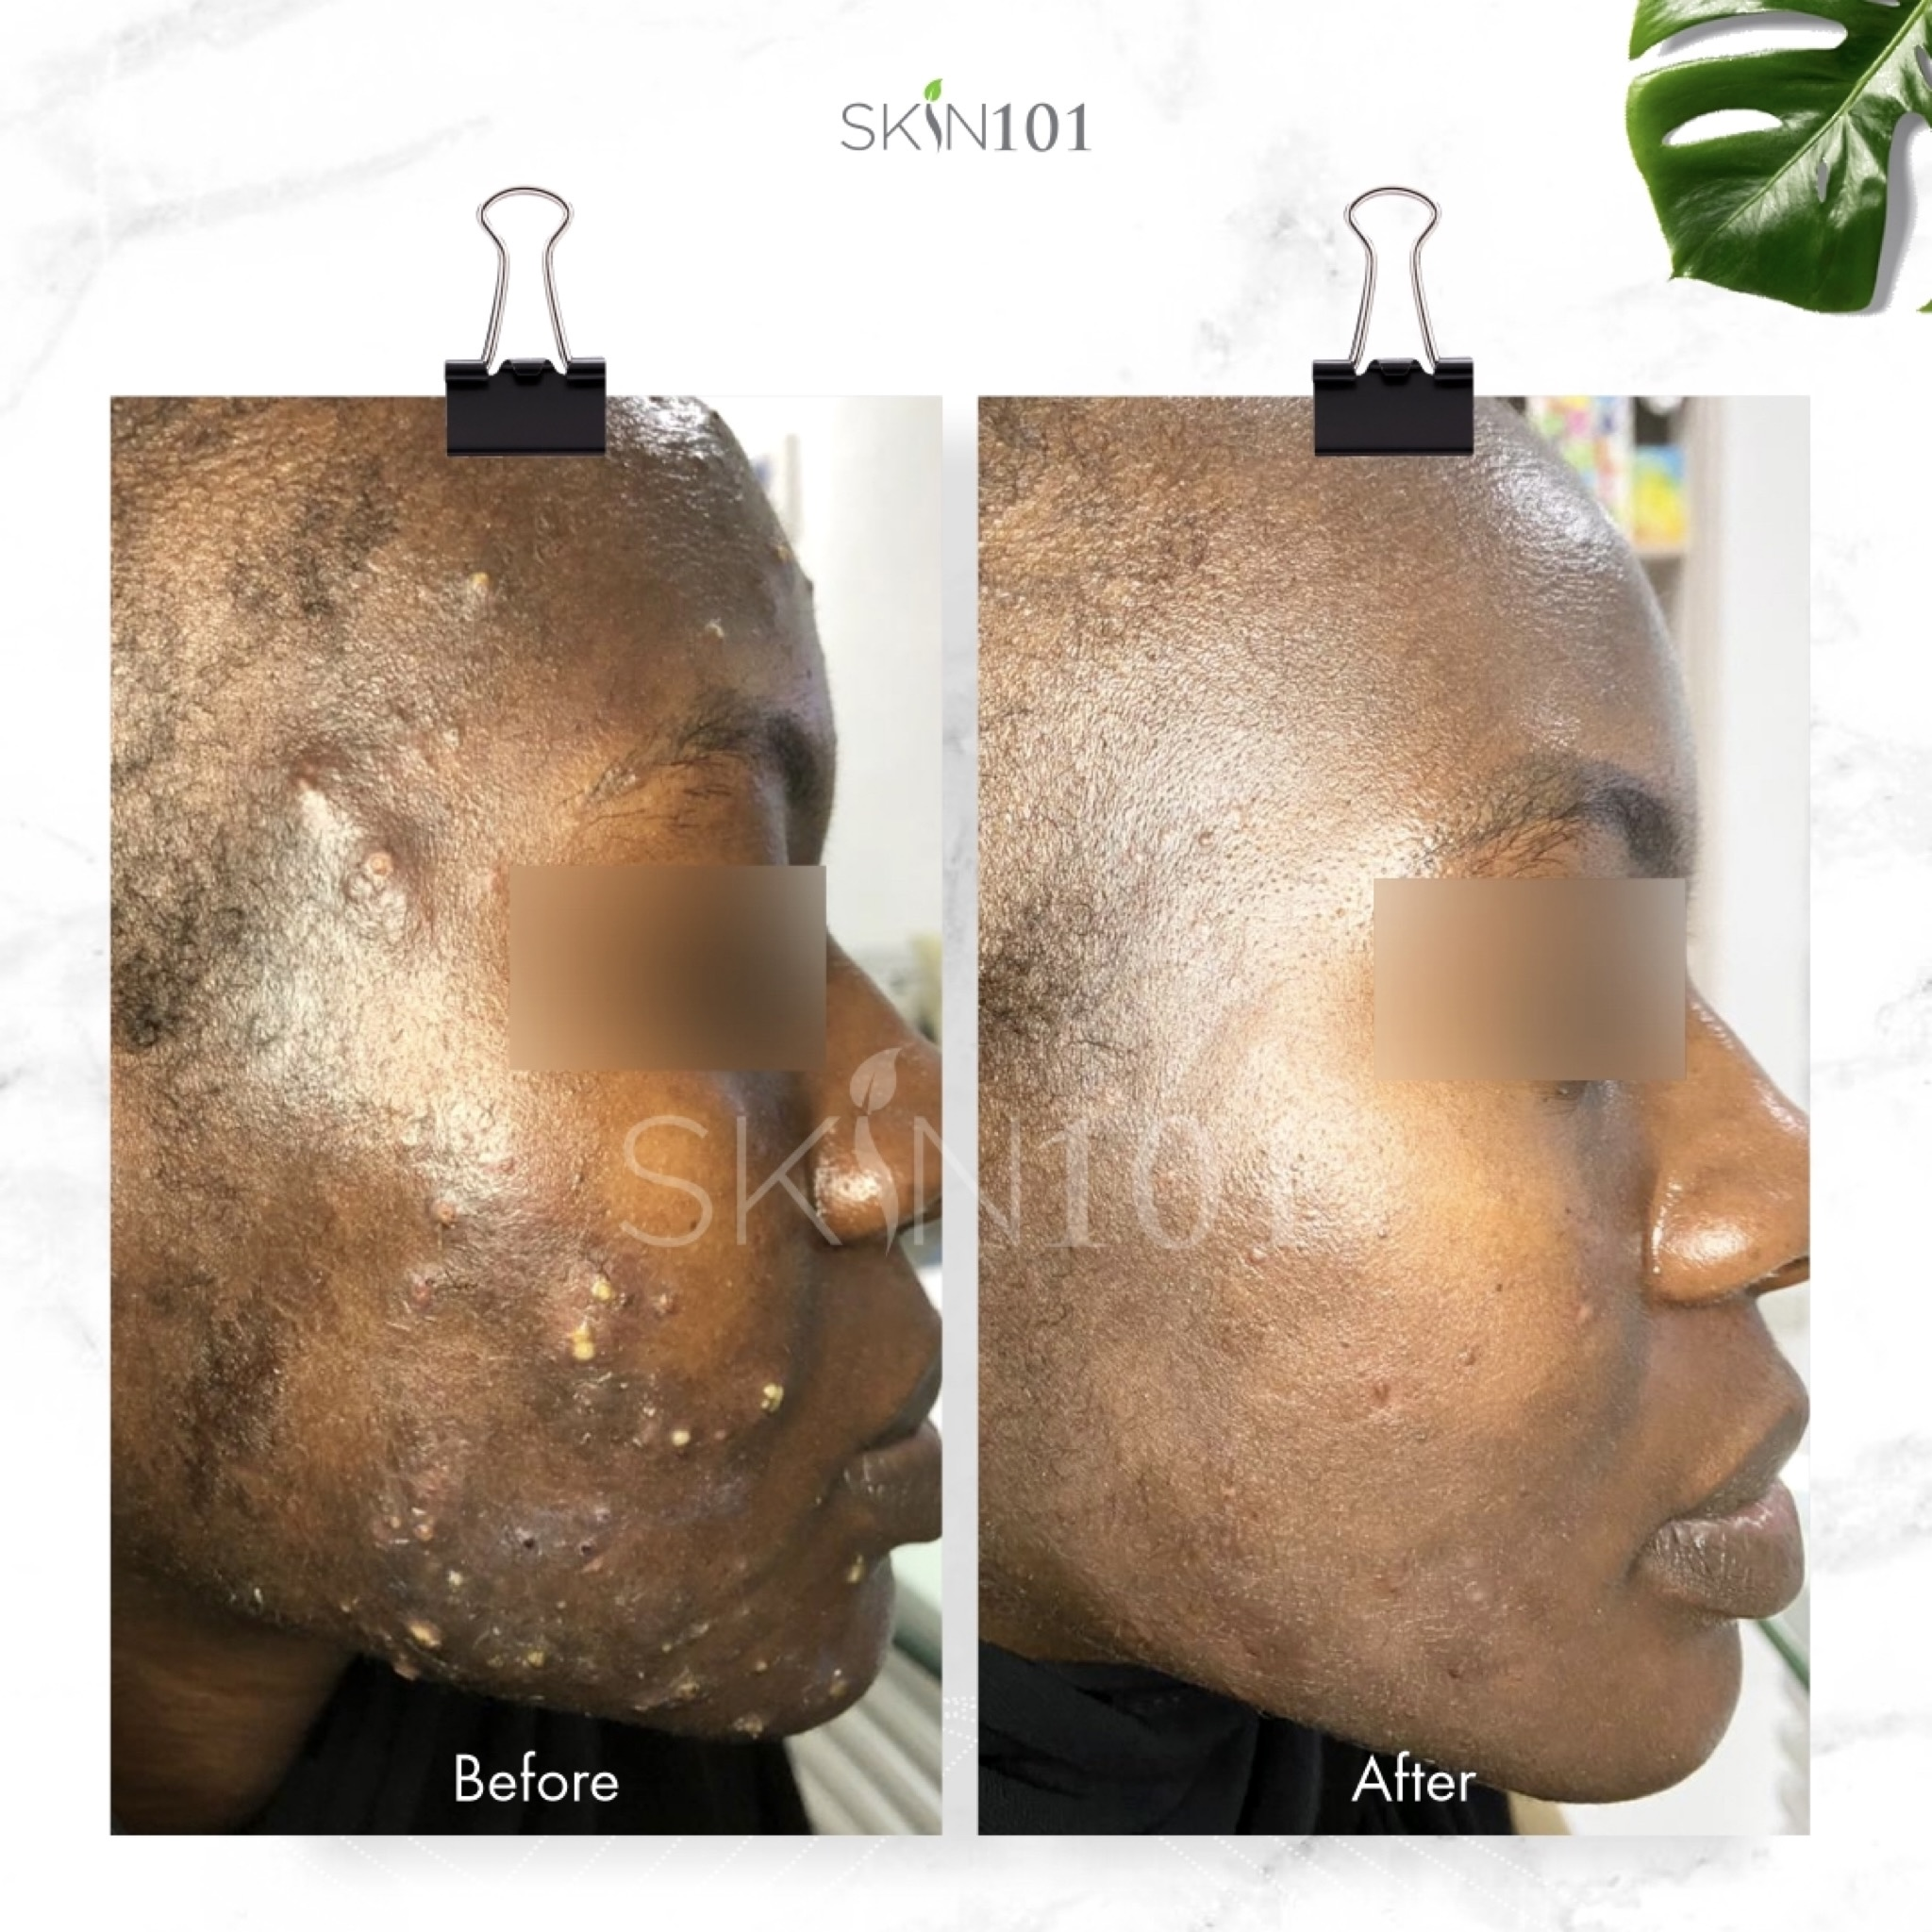 Severe Acne Treatment Before and After